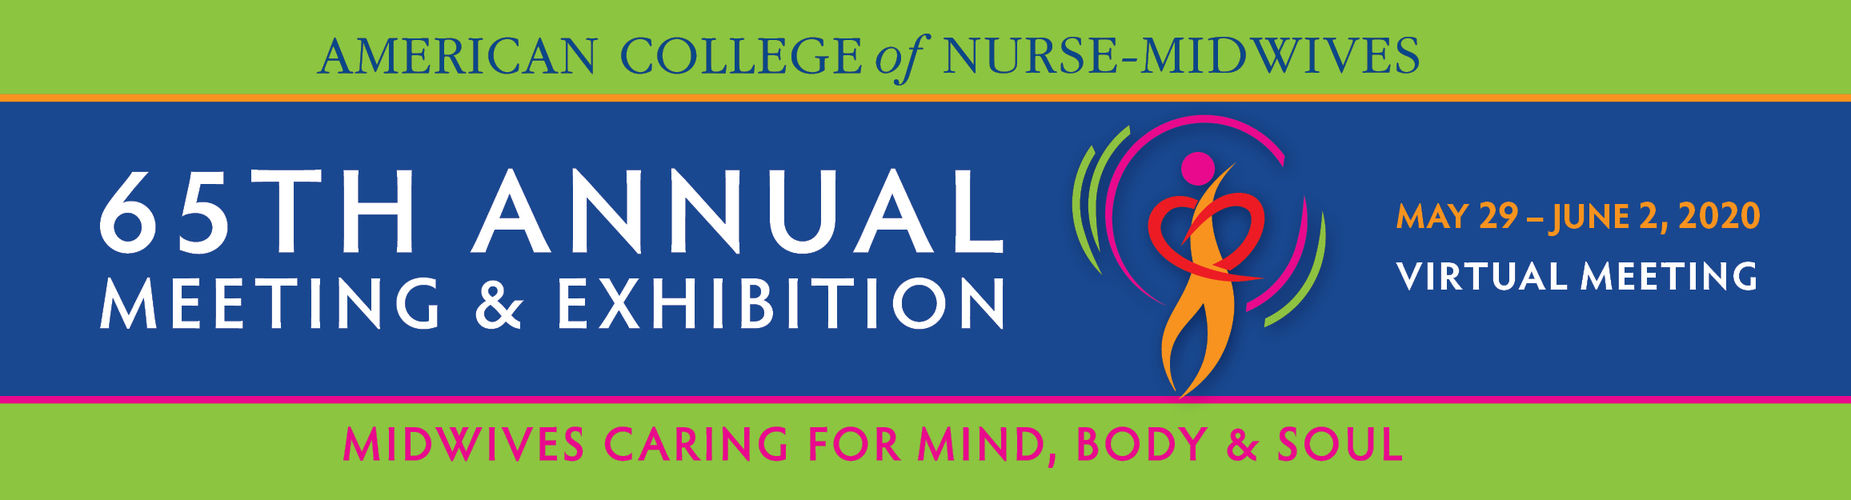 2020 American College of Nurse-Midwives Annual Conference & Exhibition